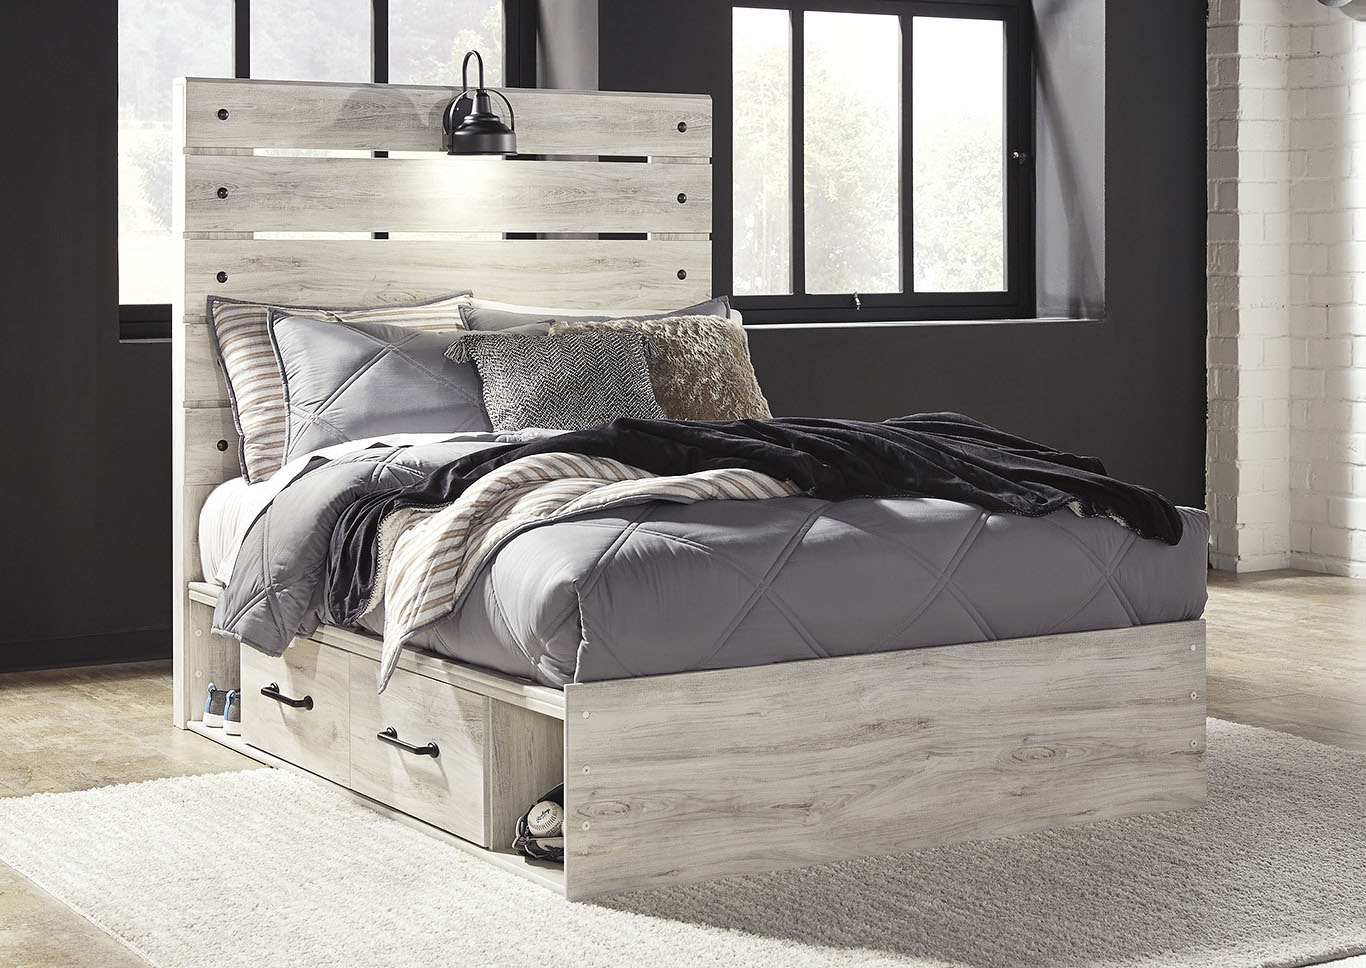 Cambeck Full Panel Bed with 4 Side Storage Drawers,Signature Design By Ashley